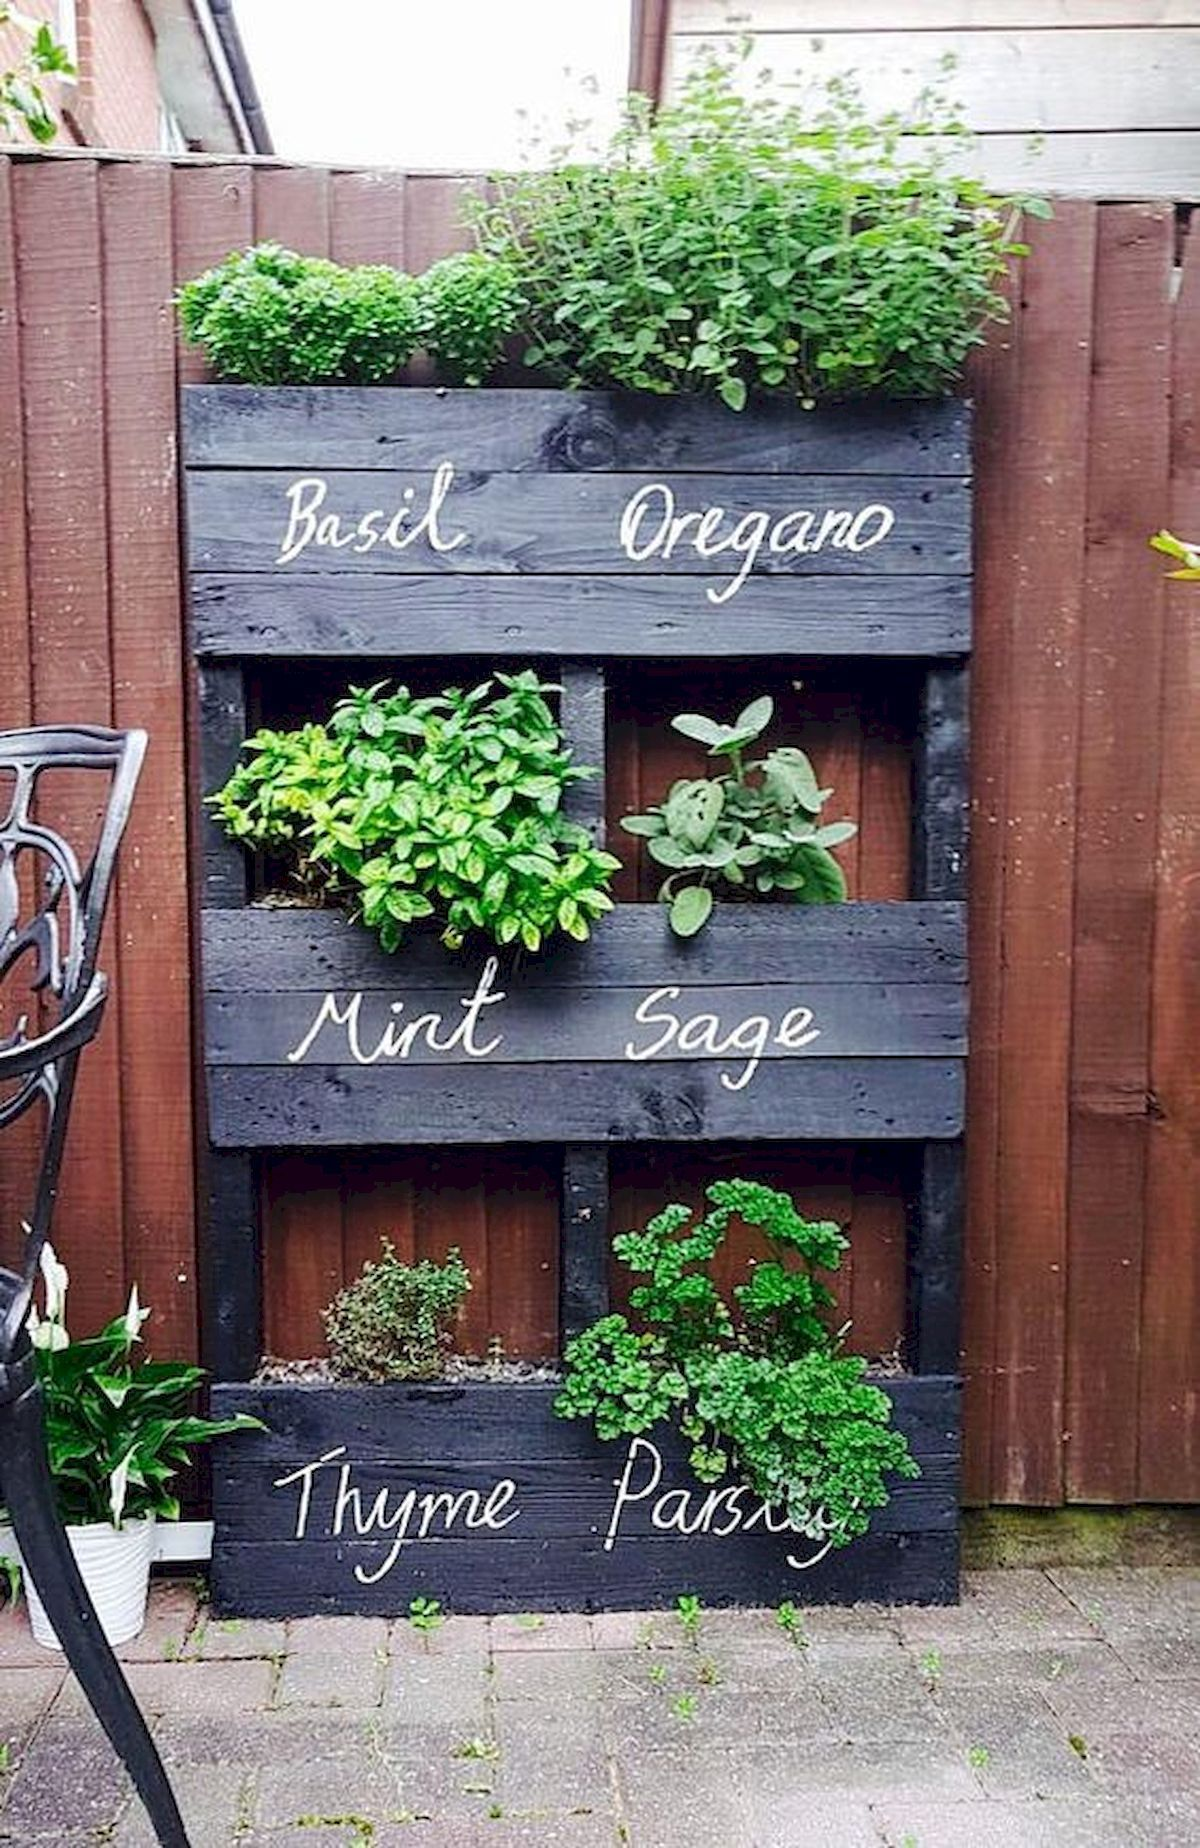 50 Inspiring DIY Projects Pallet Garden Design Ideas Did you know that pallets could be your next gardening option? You may not see a garden every time you look at one, but there is real possibility there. So the next time you come across a pallet, realize that\u2026 Continue Reading \u2192 #smallgardendesign